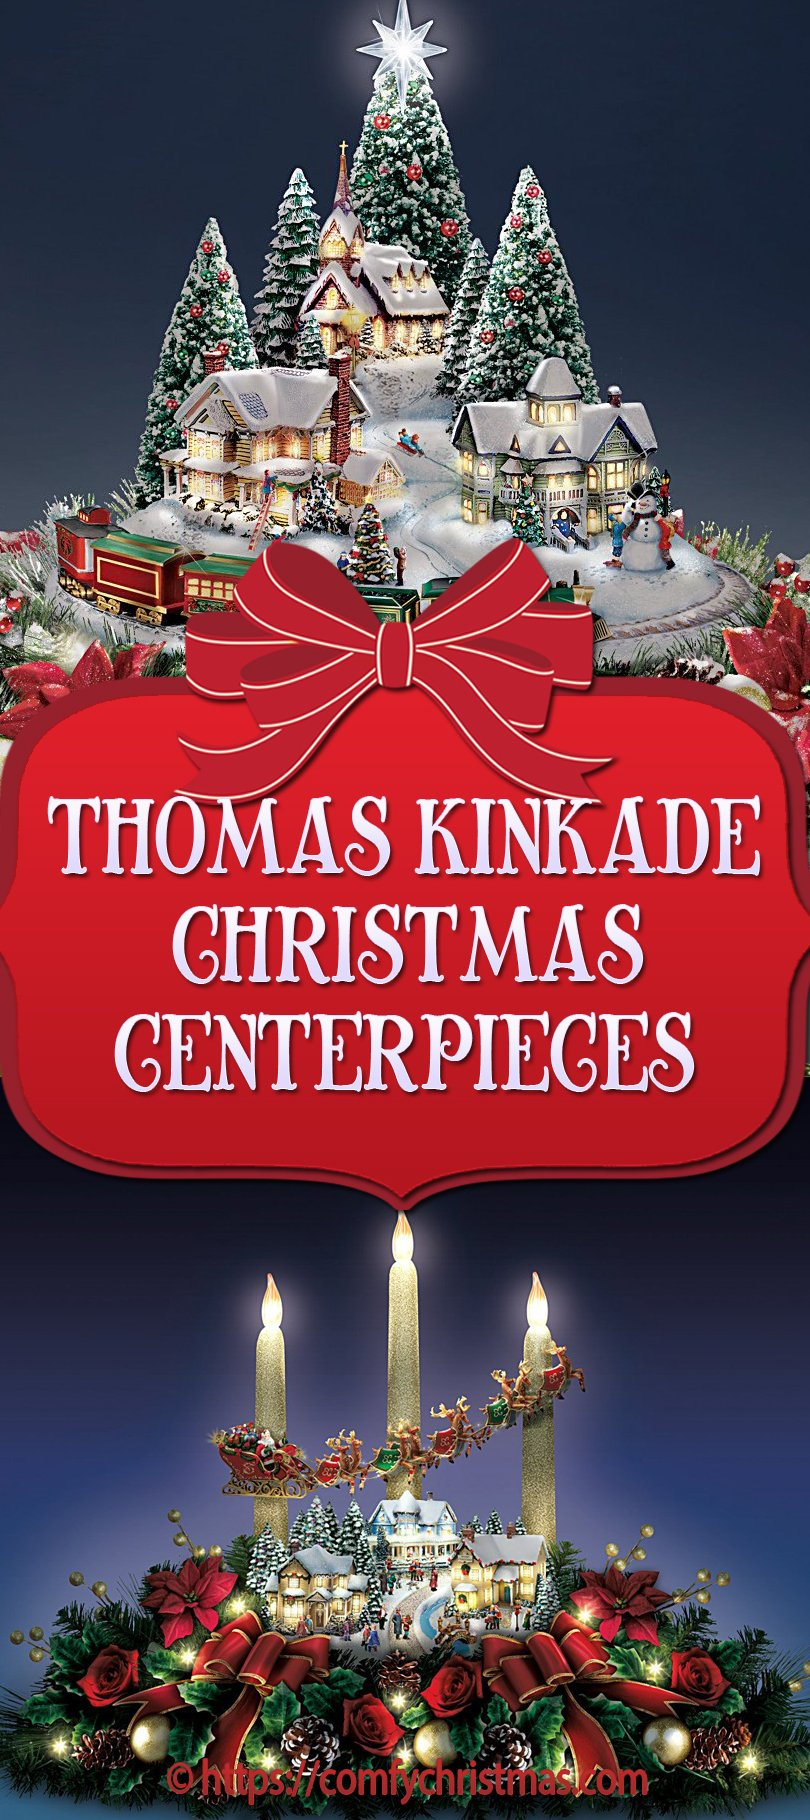 Thomas Kinkade Christmas Centerpieces